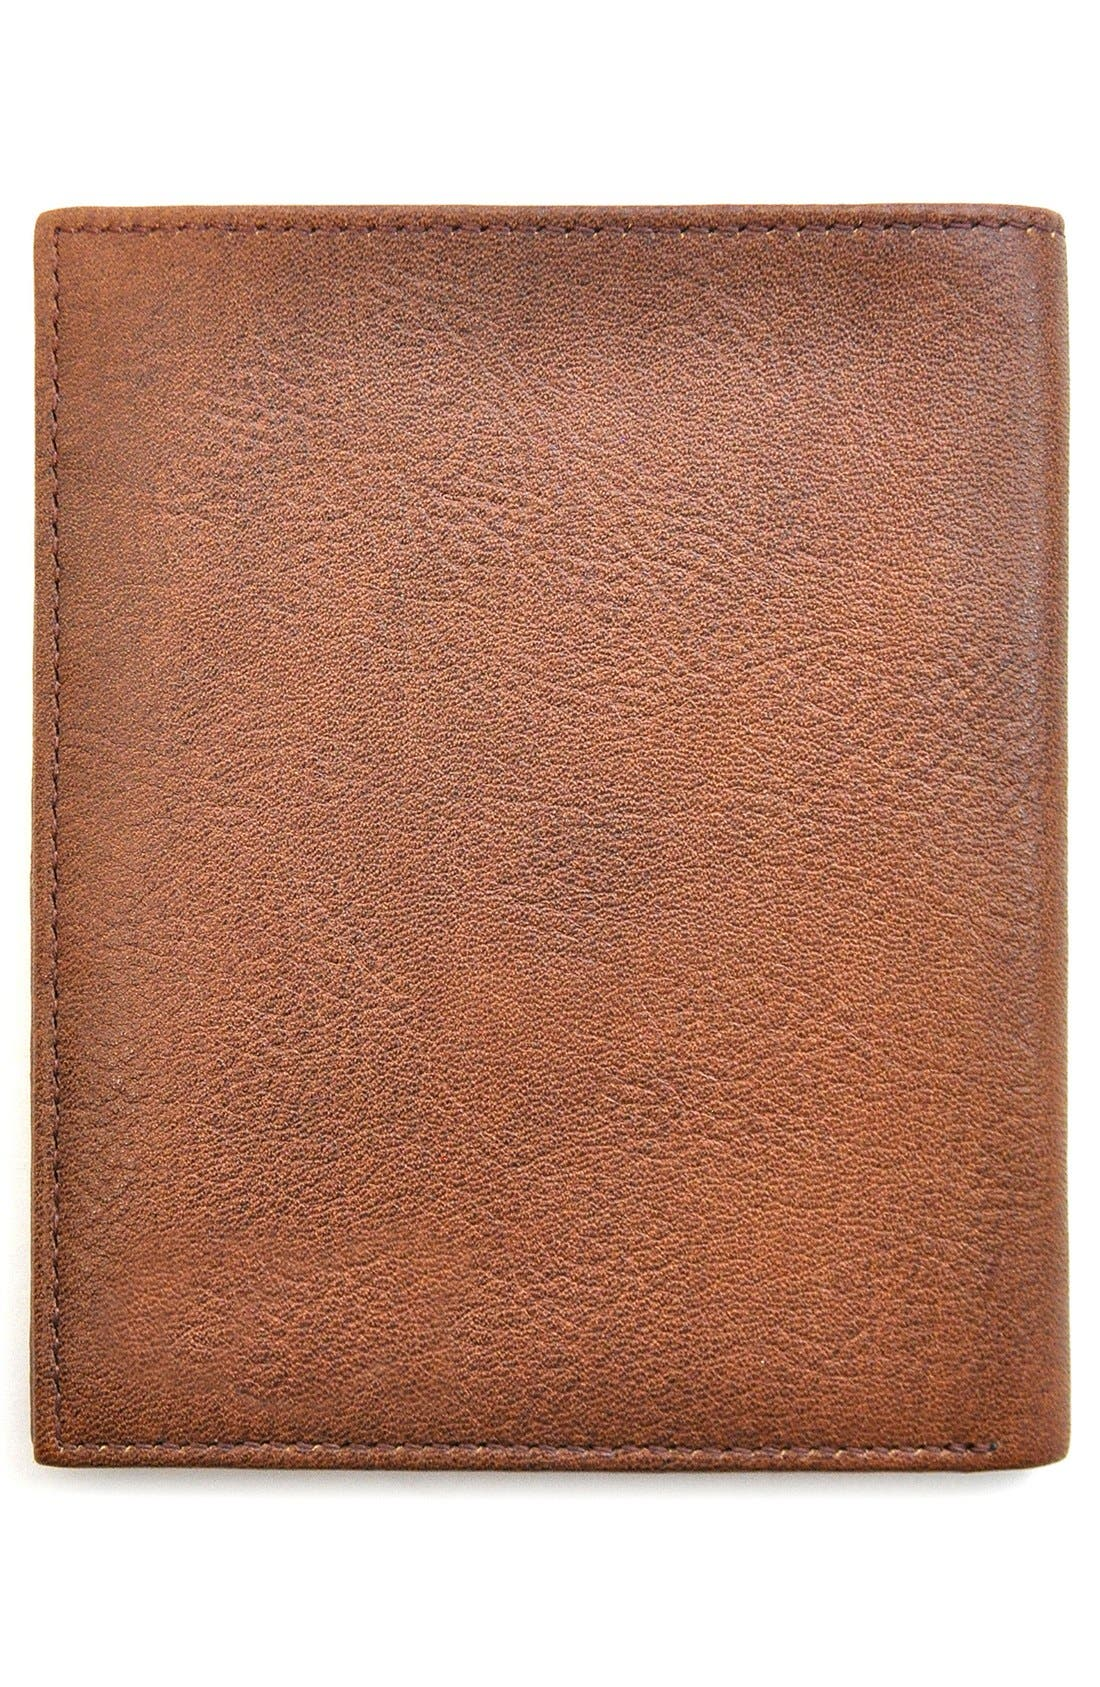 Triple Play Leather Executive Wallet,                             Alternate thumbnail 5, color,                             202